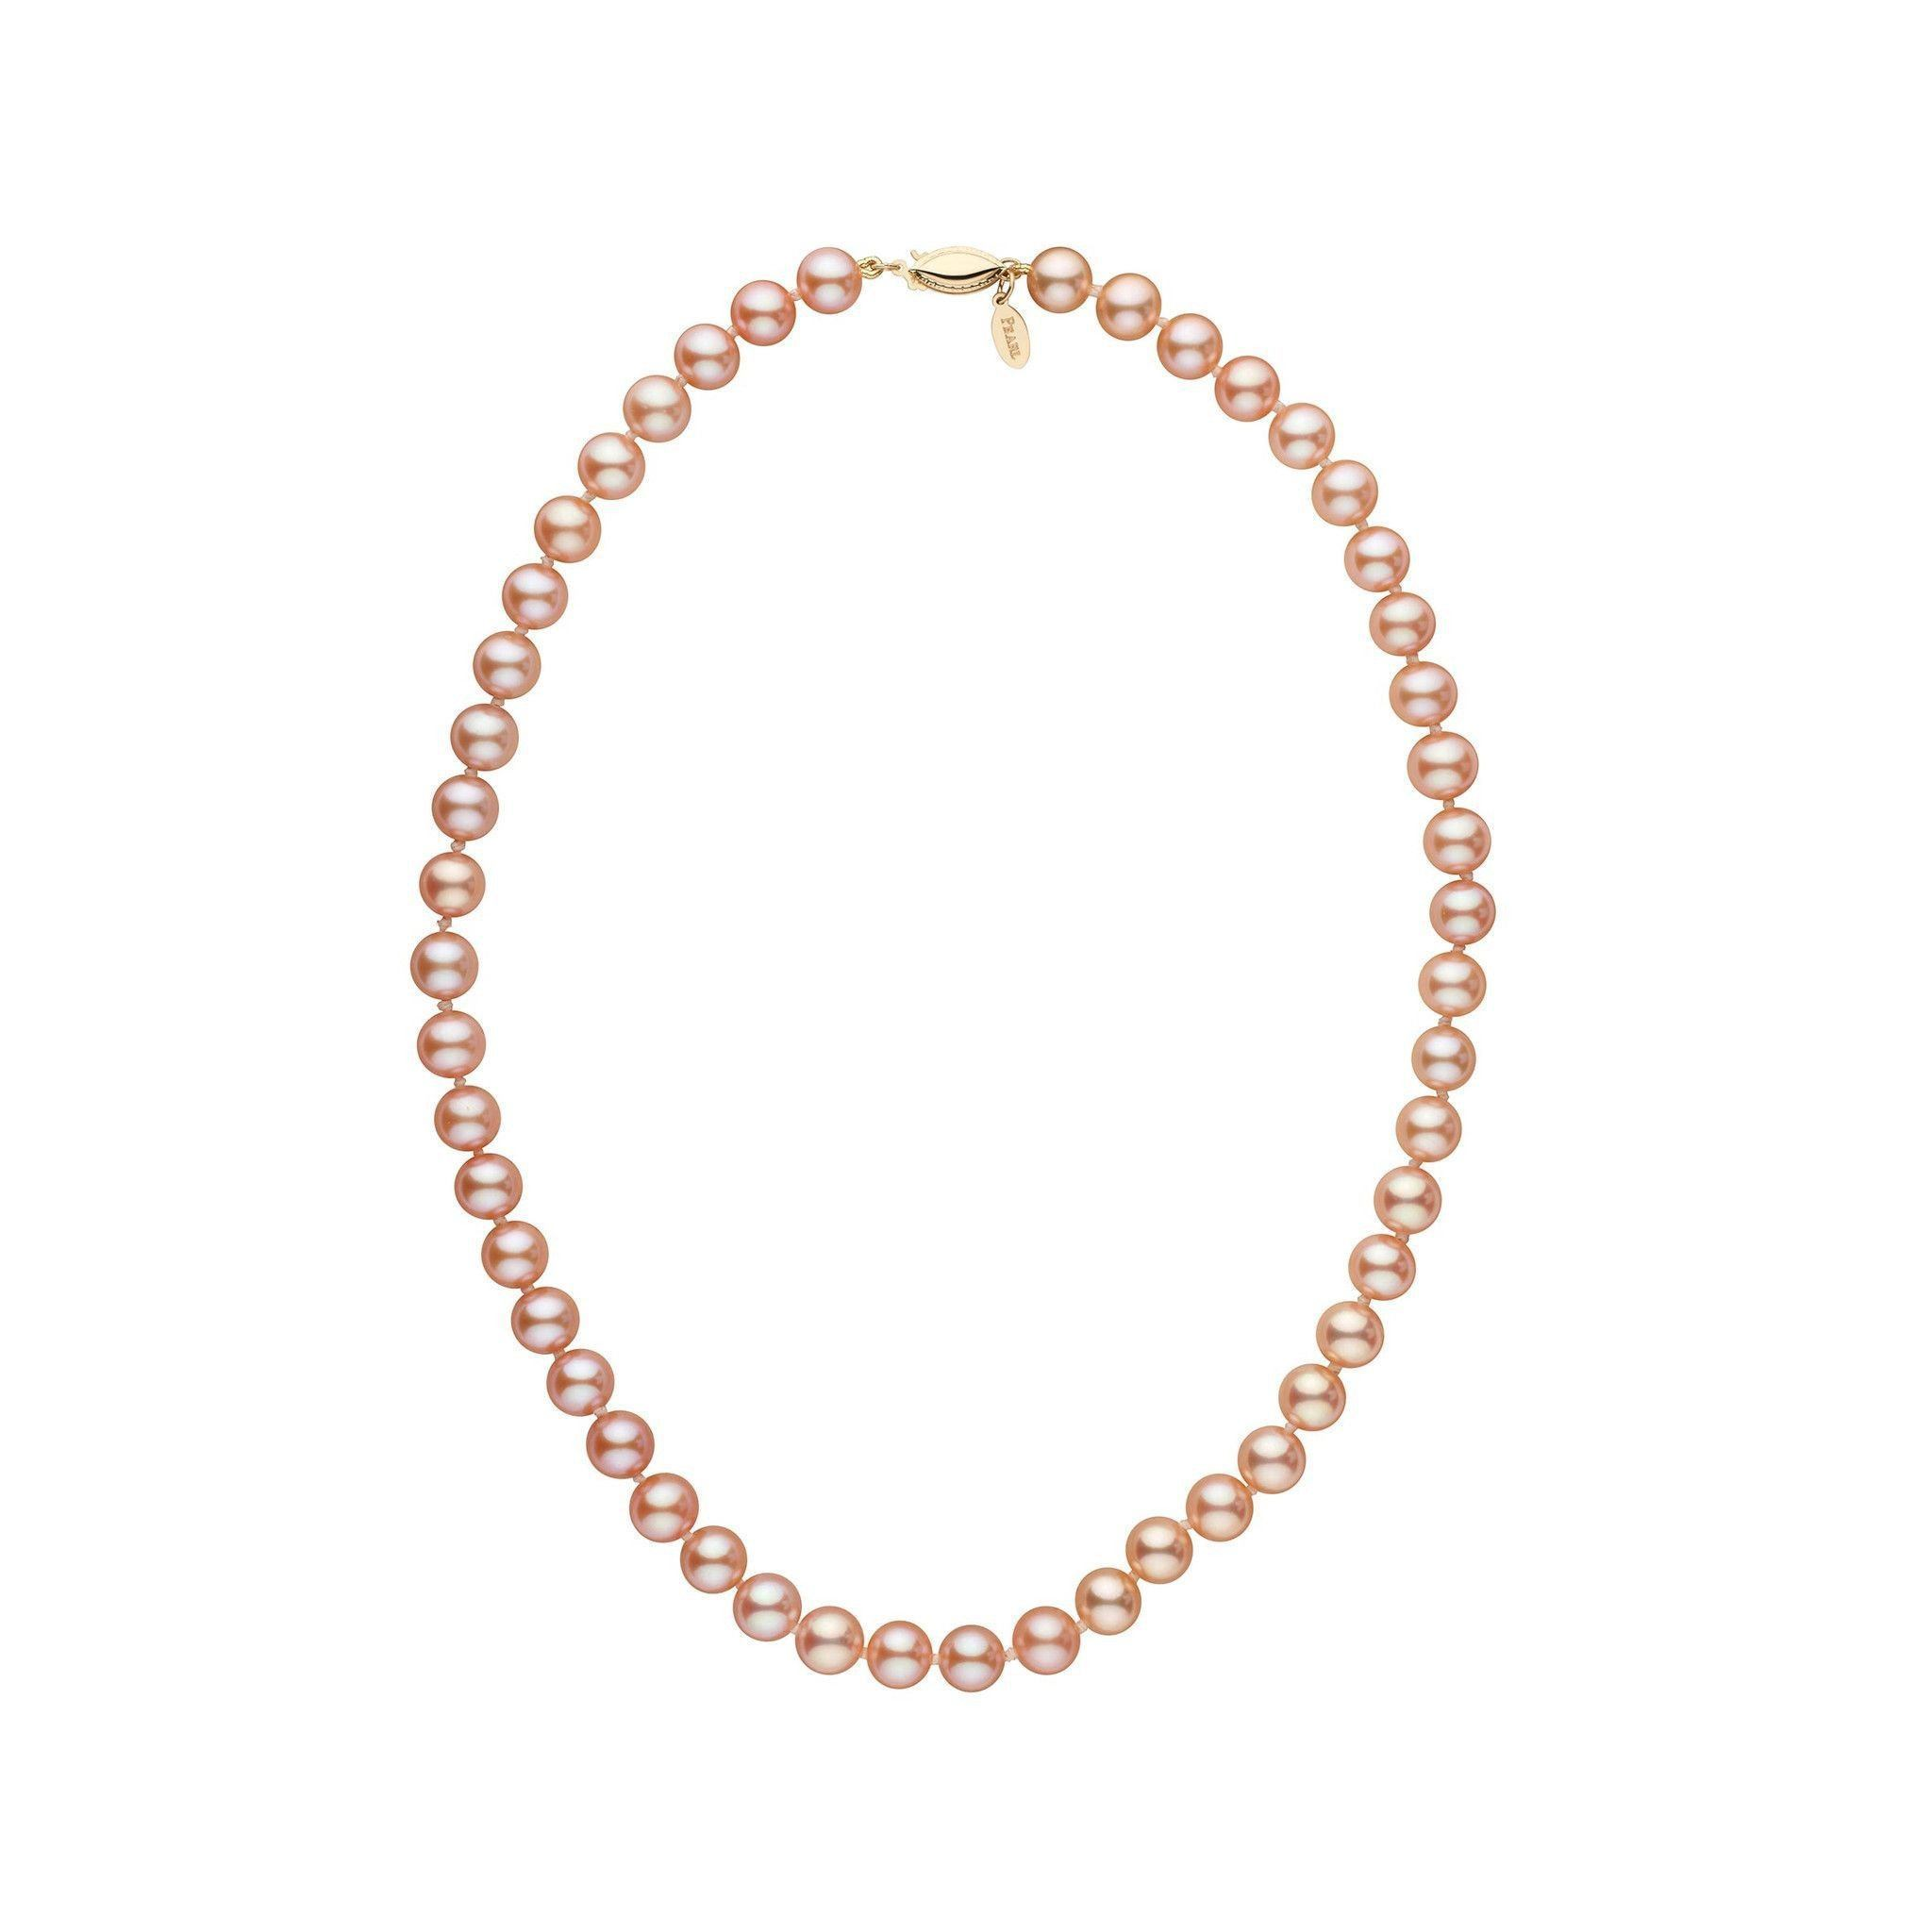 7.5-8.0 mm 16 Inch Pink to Peach Freshadama Freshwater Pearl Necklace